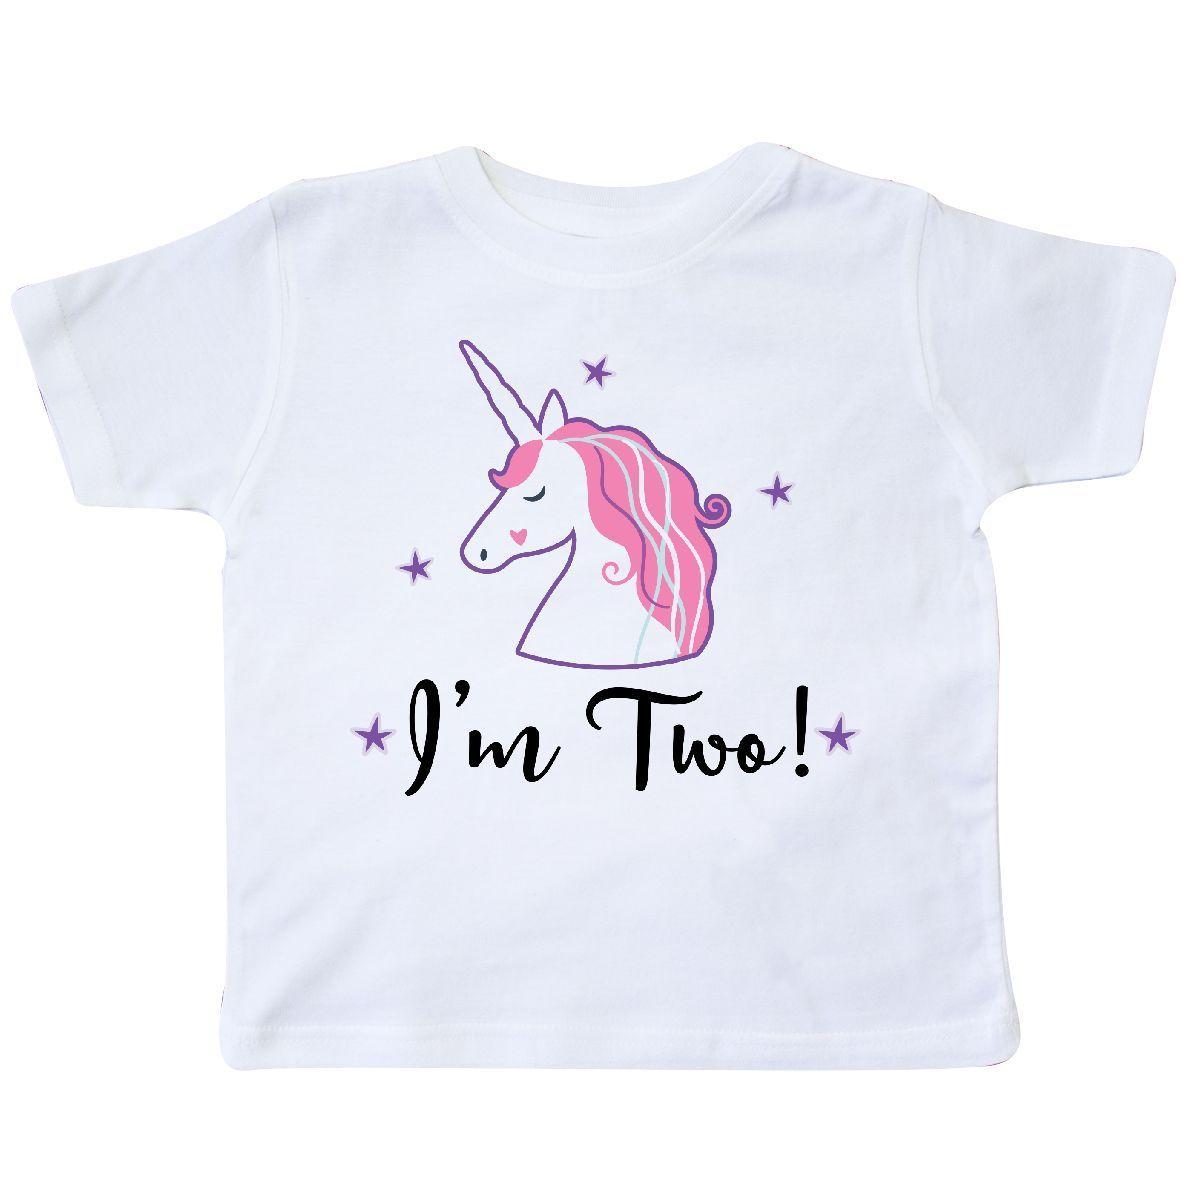 bdd2736e Inktastic 2nd Birthday Girls Unicorn Party Toddler T Shirt Two 2 Year Old  Childs Funny Unisex Casual Tee Gift Printing Of T Shirt All That Tshirt  From ...